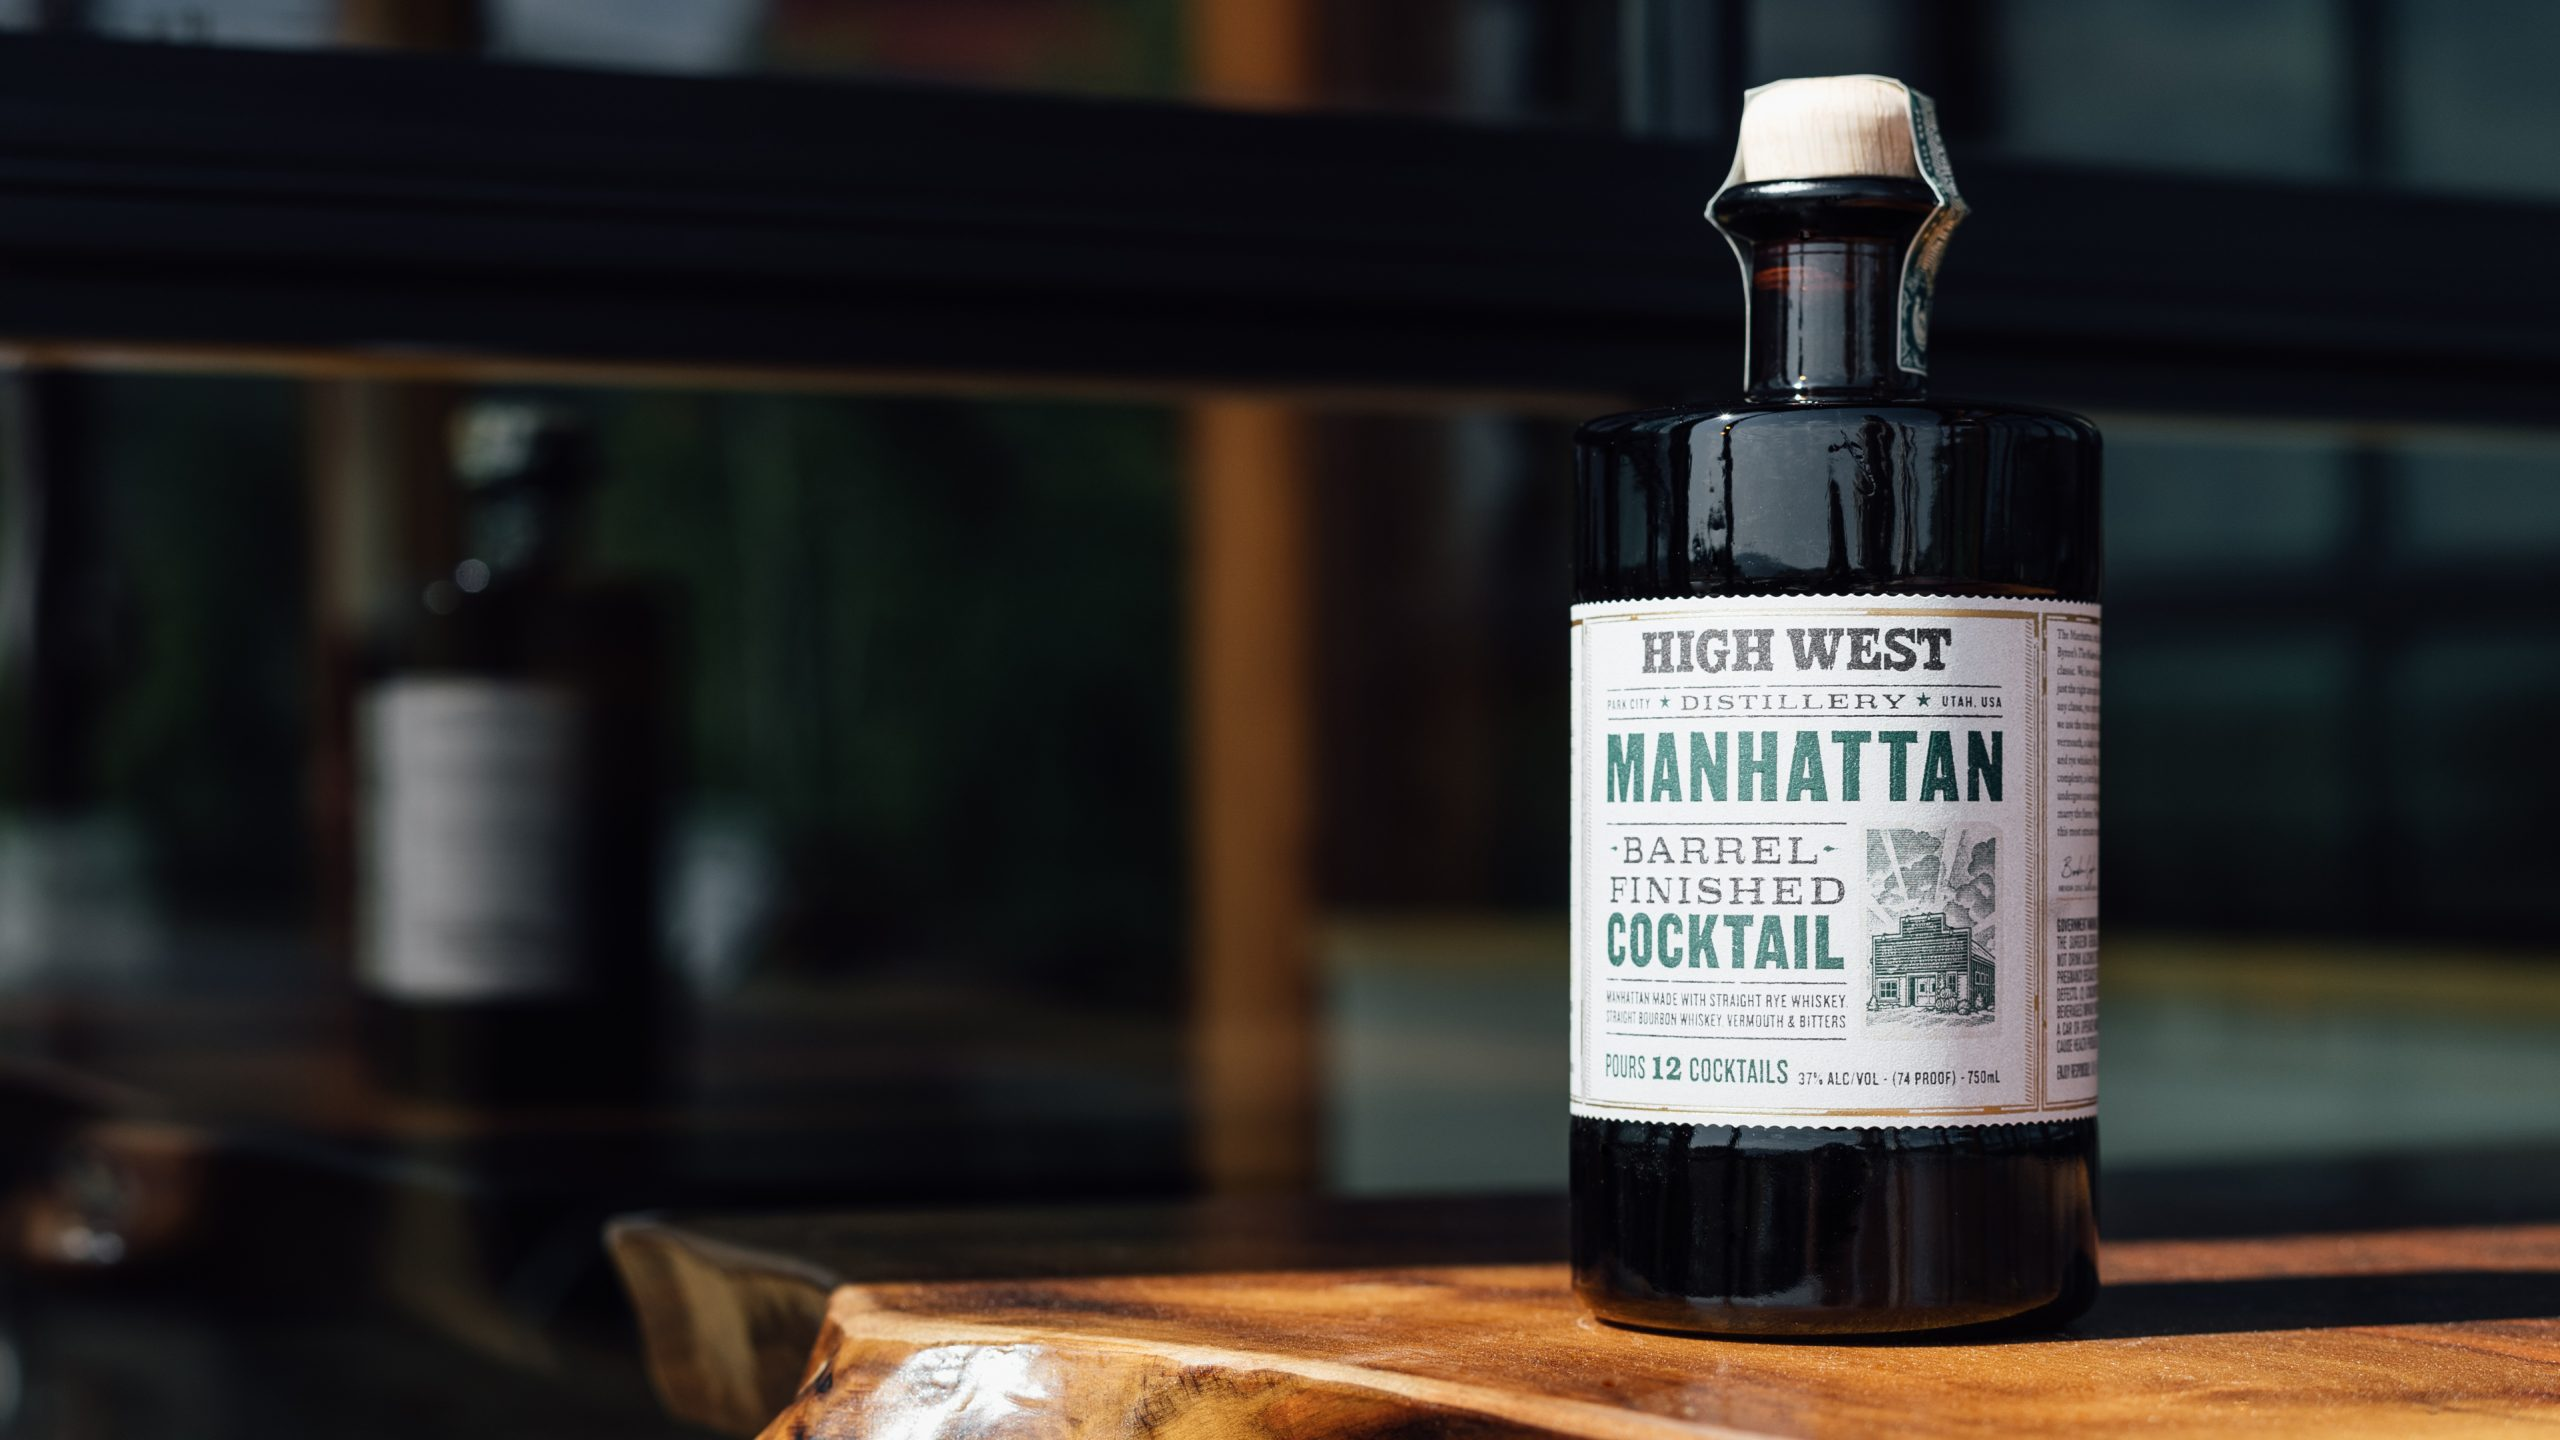 High West bottled cocktail Manhattan